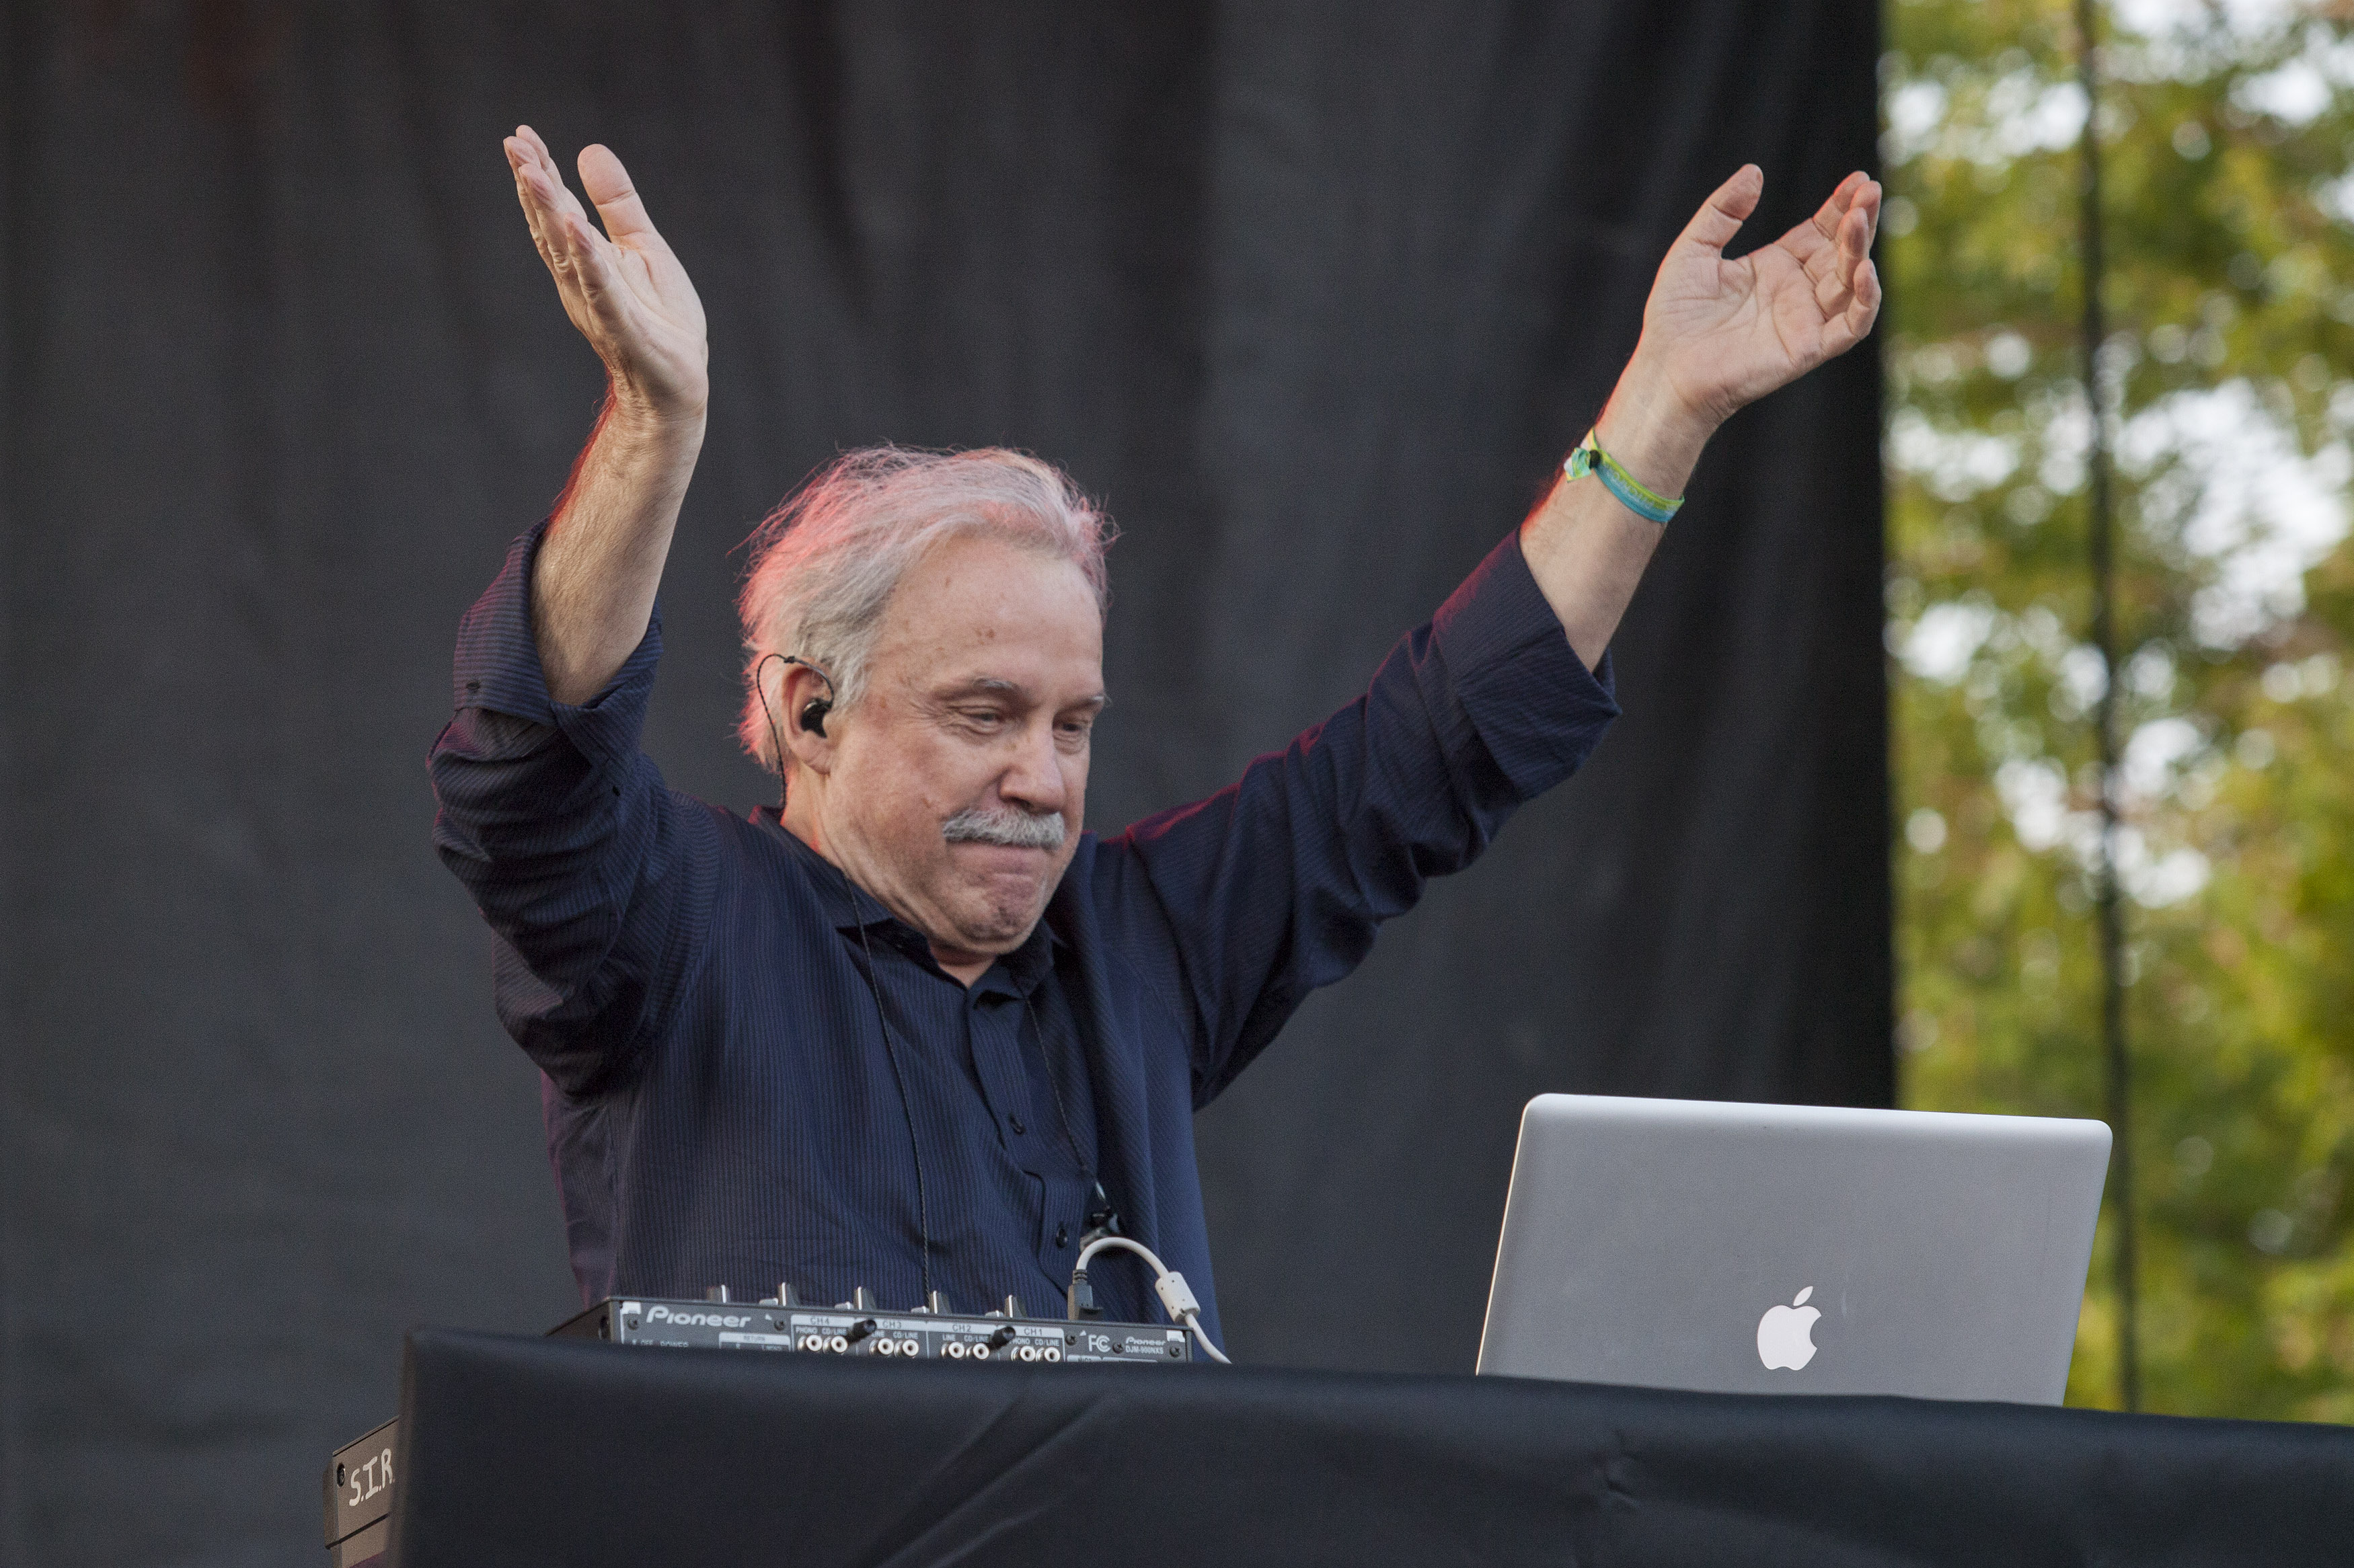 Giorgio Moroder seen at the 2014 Pitchfork Music Festival, on Friday, June 18, 2014 in Chicago. (Photo by Barry Brecheisen/Invision/AP)